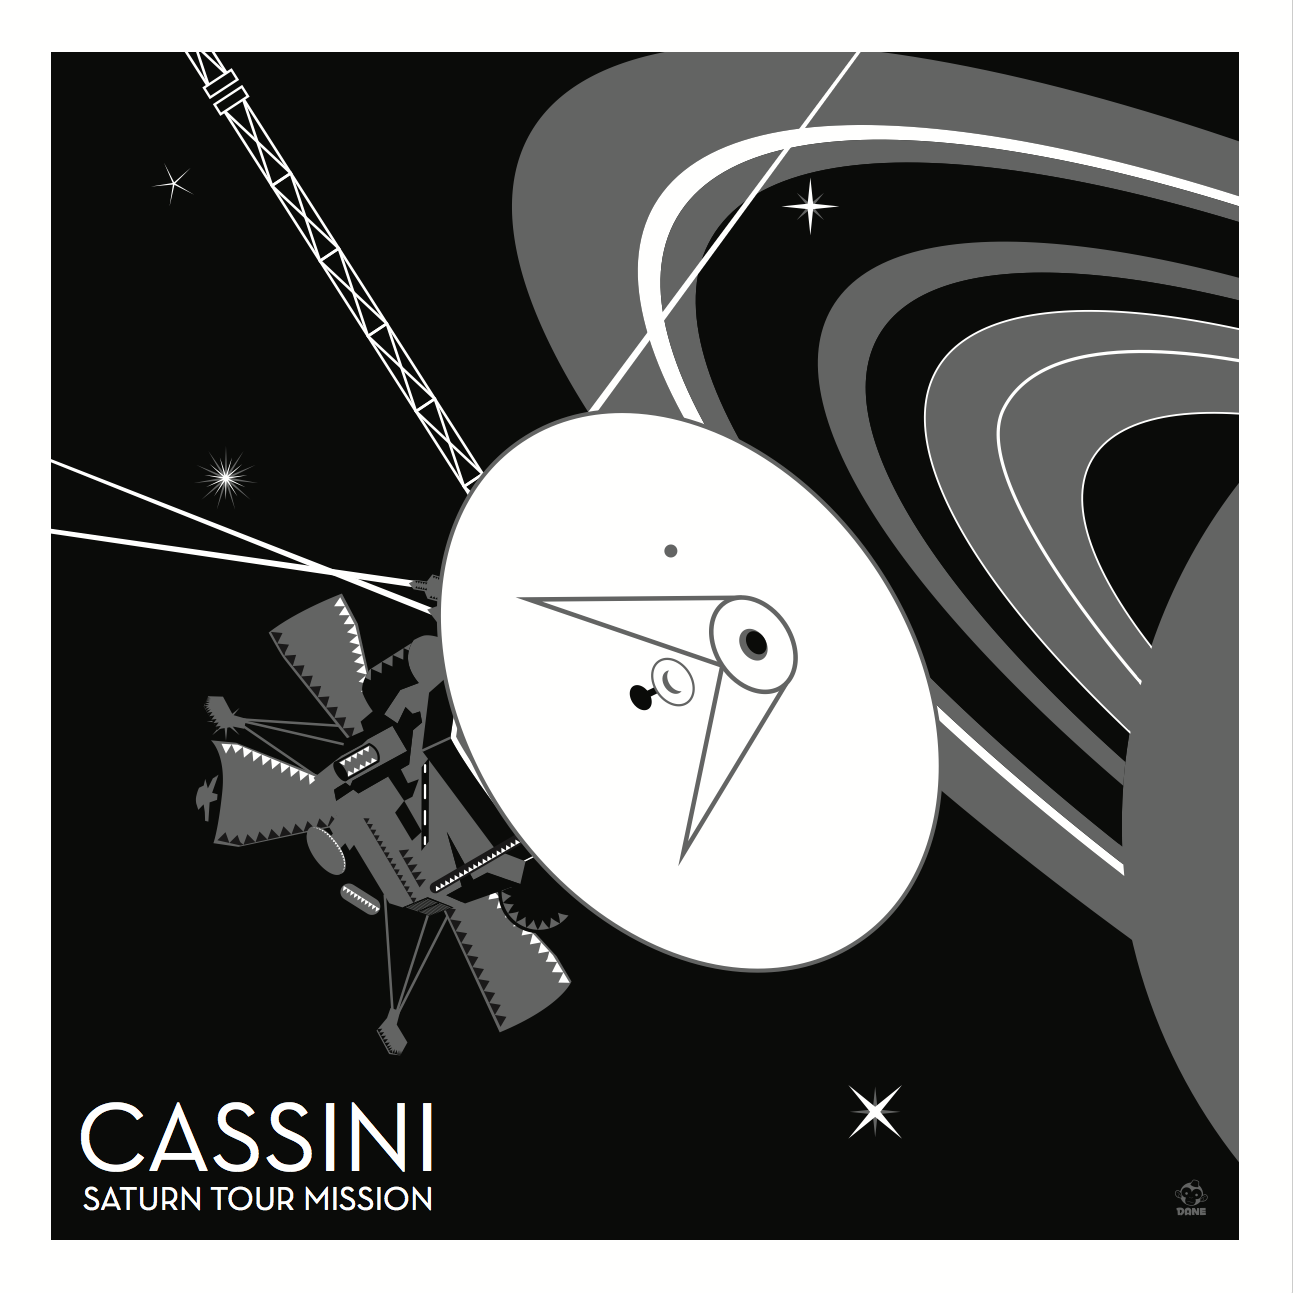 Cassini Saturn Probe 10x10 Giclee Print